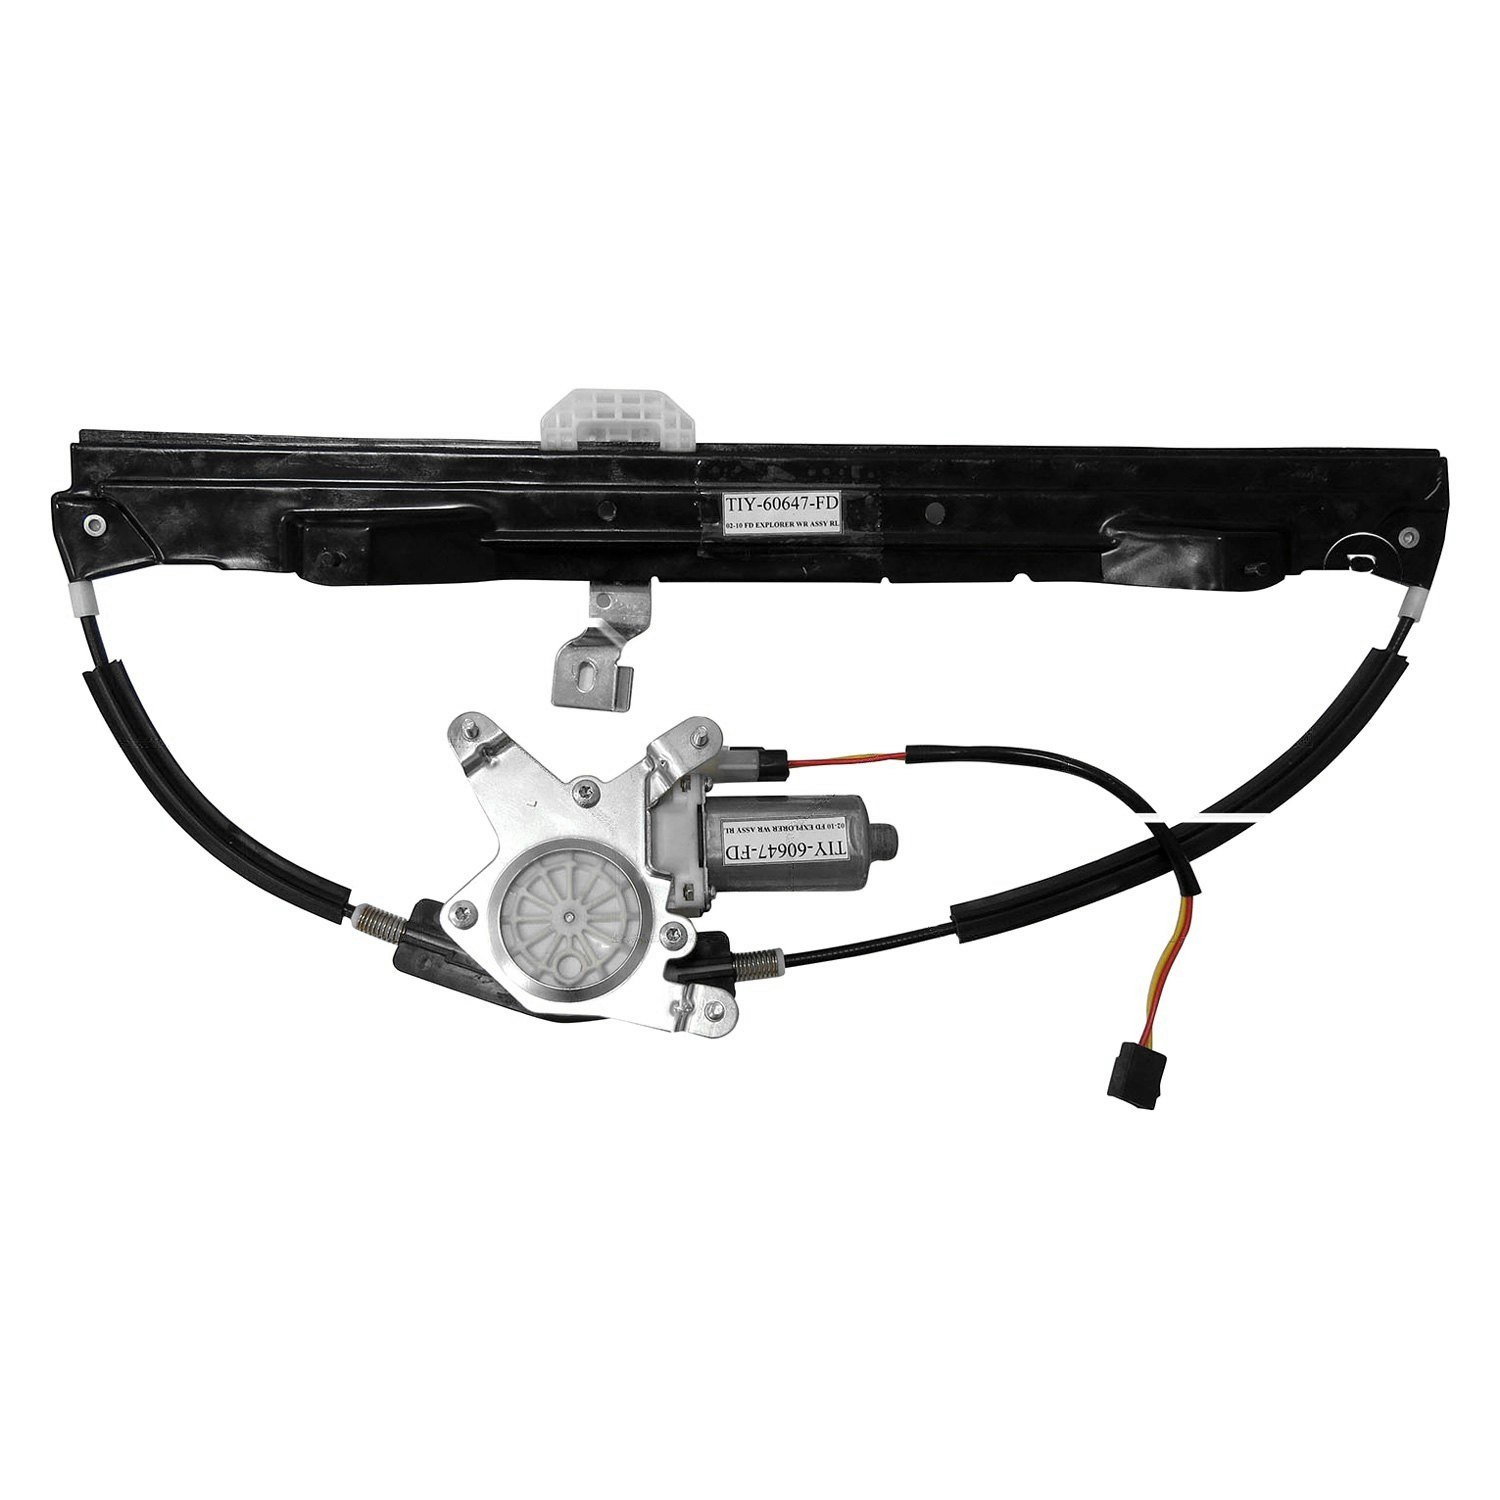 Tyc ford explorer 2002 2003 power window regulator and for 2002 ford explorer right rear window regulator